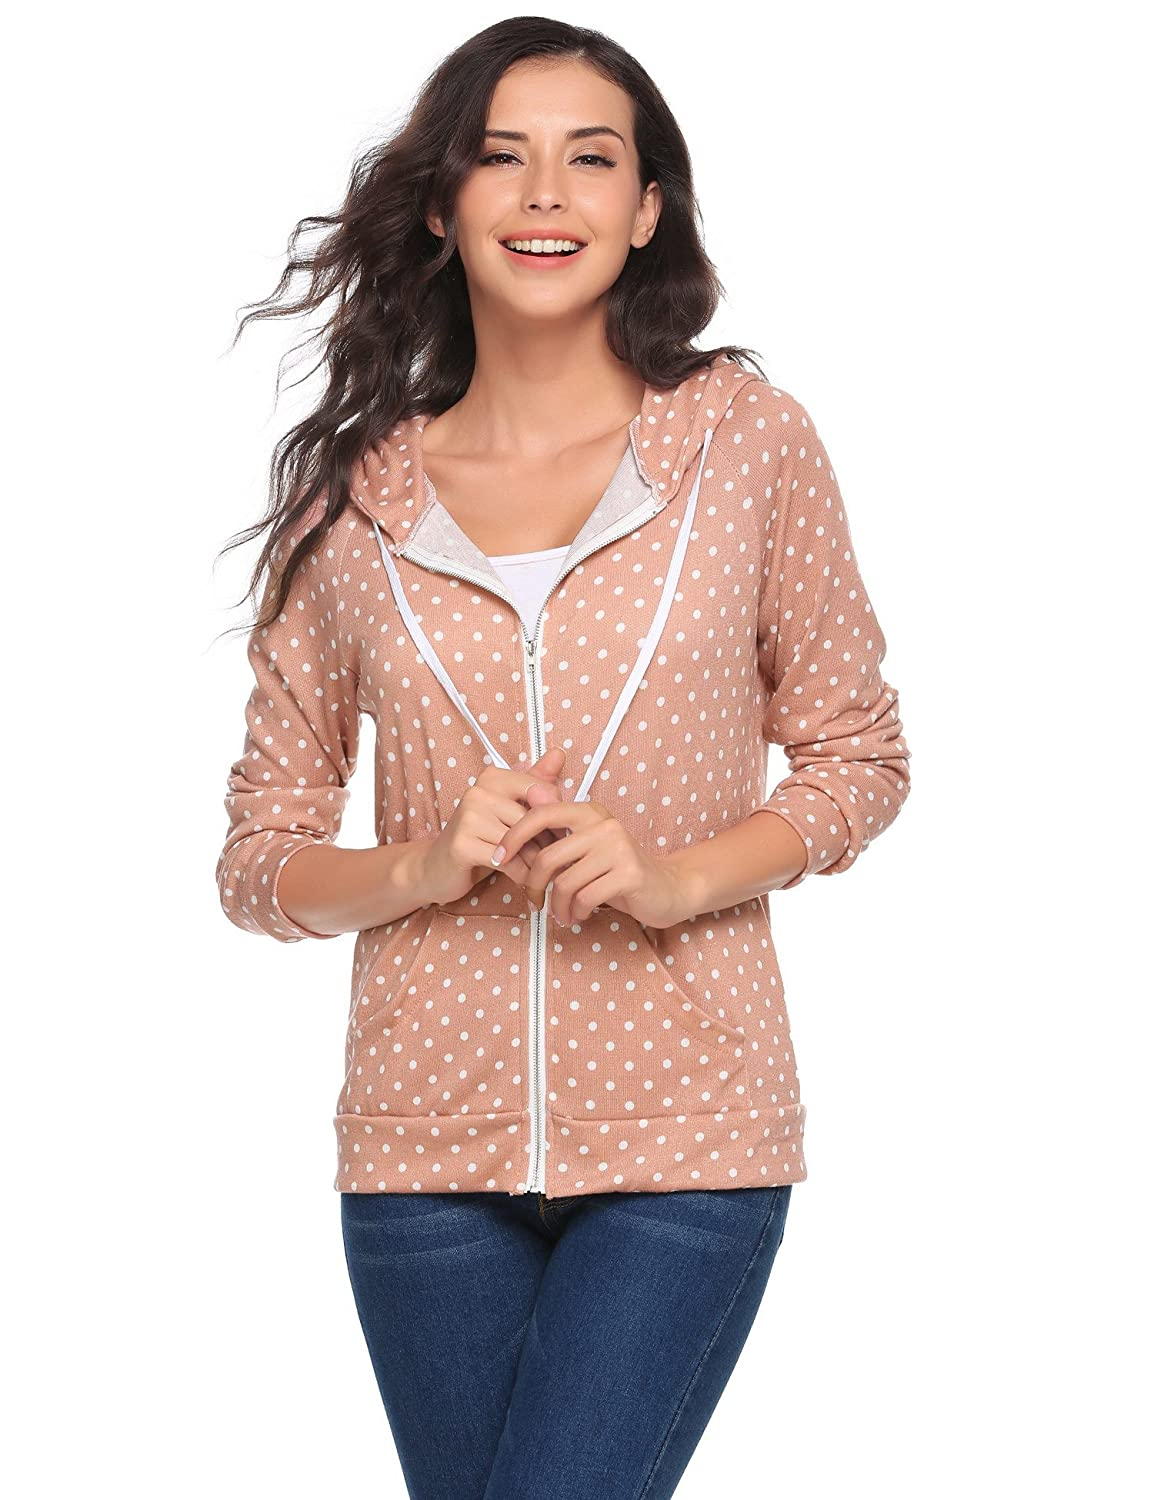 This zip-front hooded sweatshirt keeps things comfortable with  skin-friendly fabric 3dff802ba